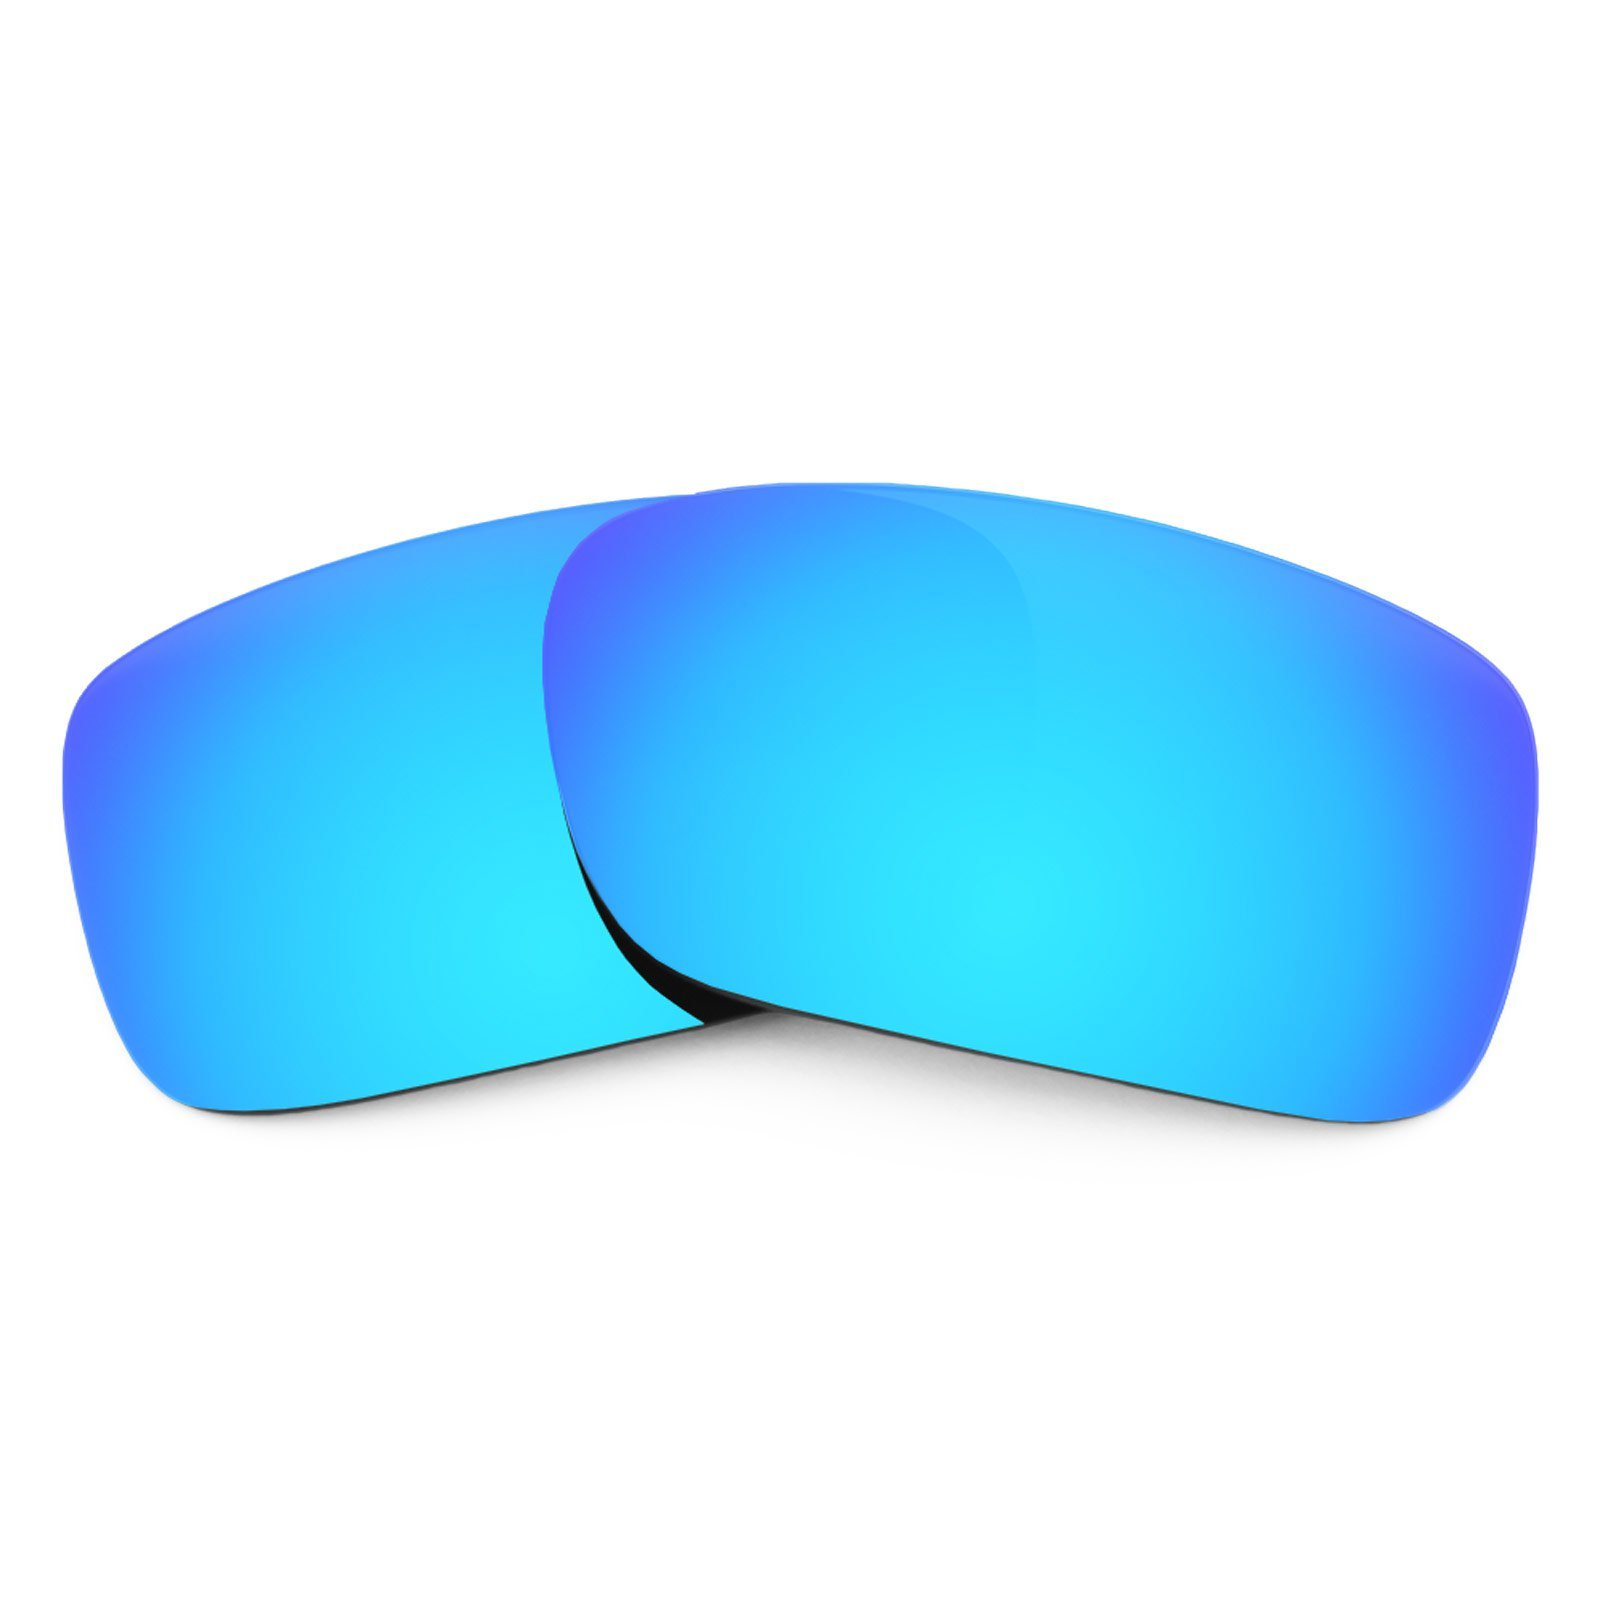 Revant Replacement Lenses for Oakley Crankcase, Polarized, Ice Blue MirrorShield by Revant